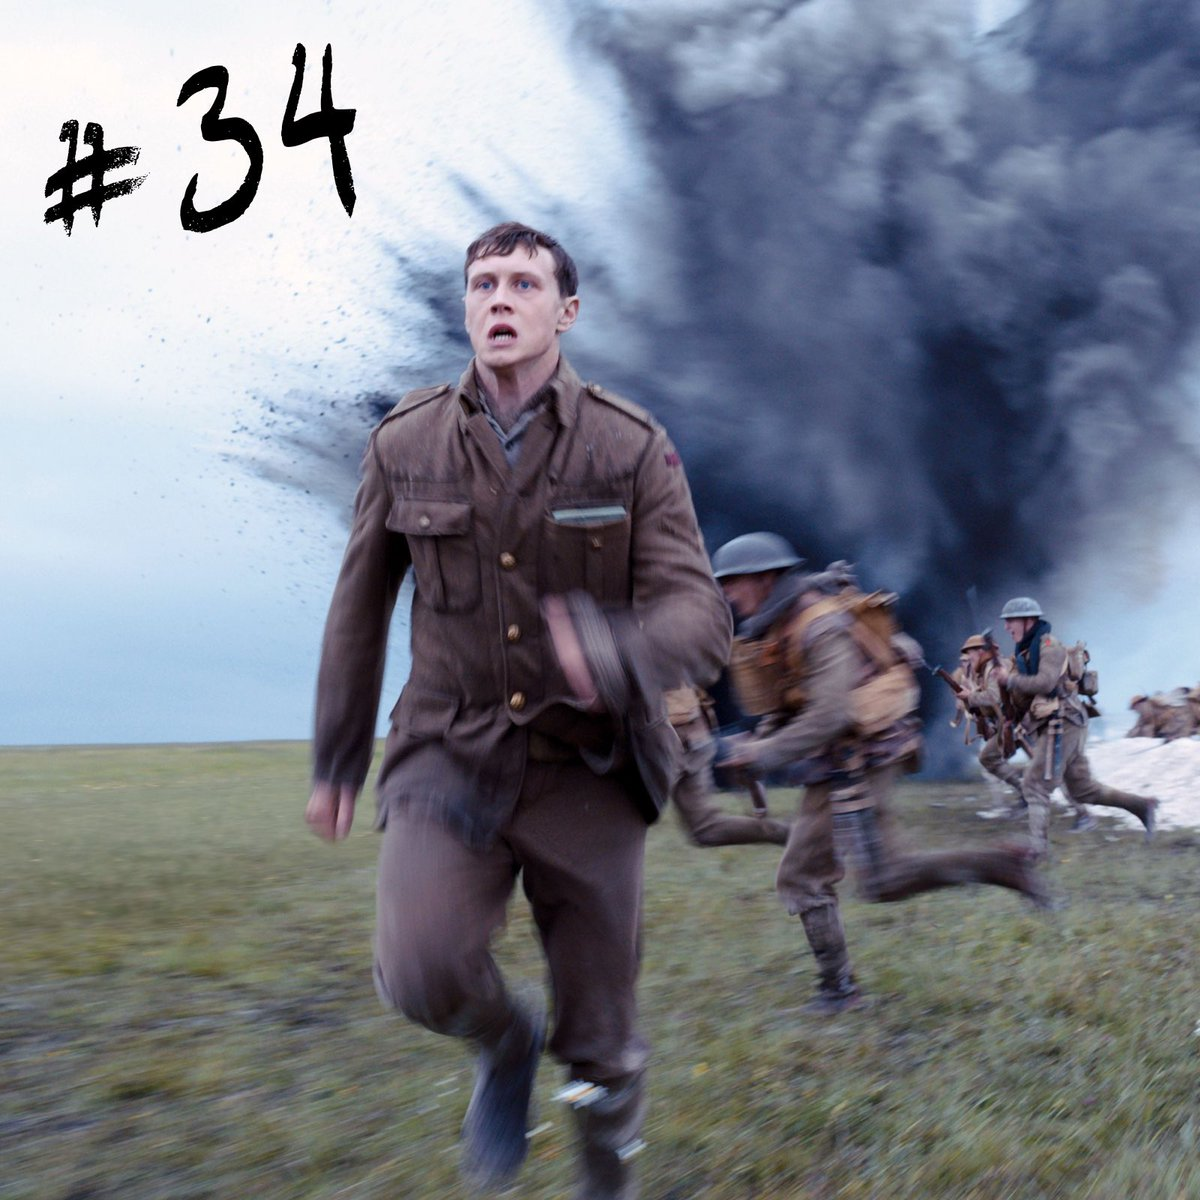 I think we accidentally did a legit movie review/critique on this one.  Sorry about that . Try to enjoy it anyway. #1917 #1917movie #1917podcast #1917moviereview #ComedyPodcast #MovieTalkPodcast #podernfamily #podnation #podcast   #moviepodcast  #ComedyPodcast #MovieTalkPodcastpic.twitter.com/8quMo36aBI